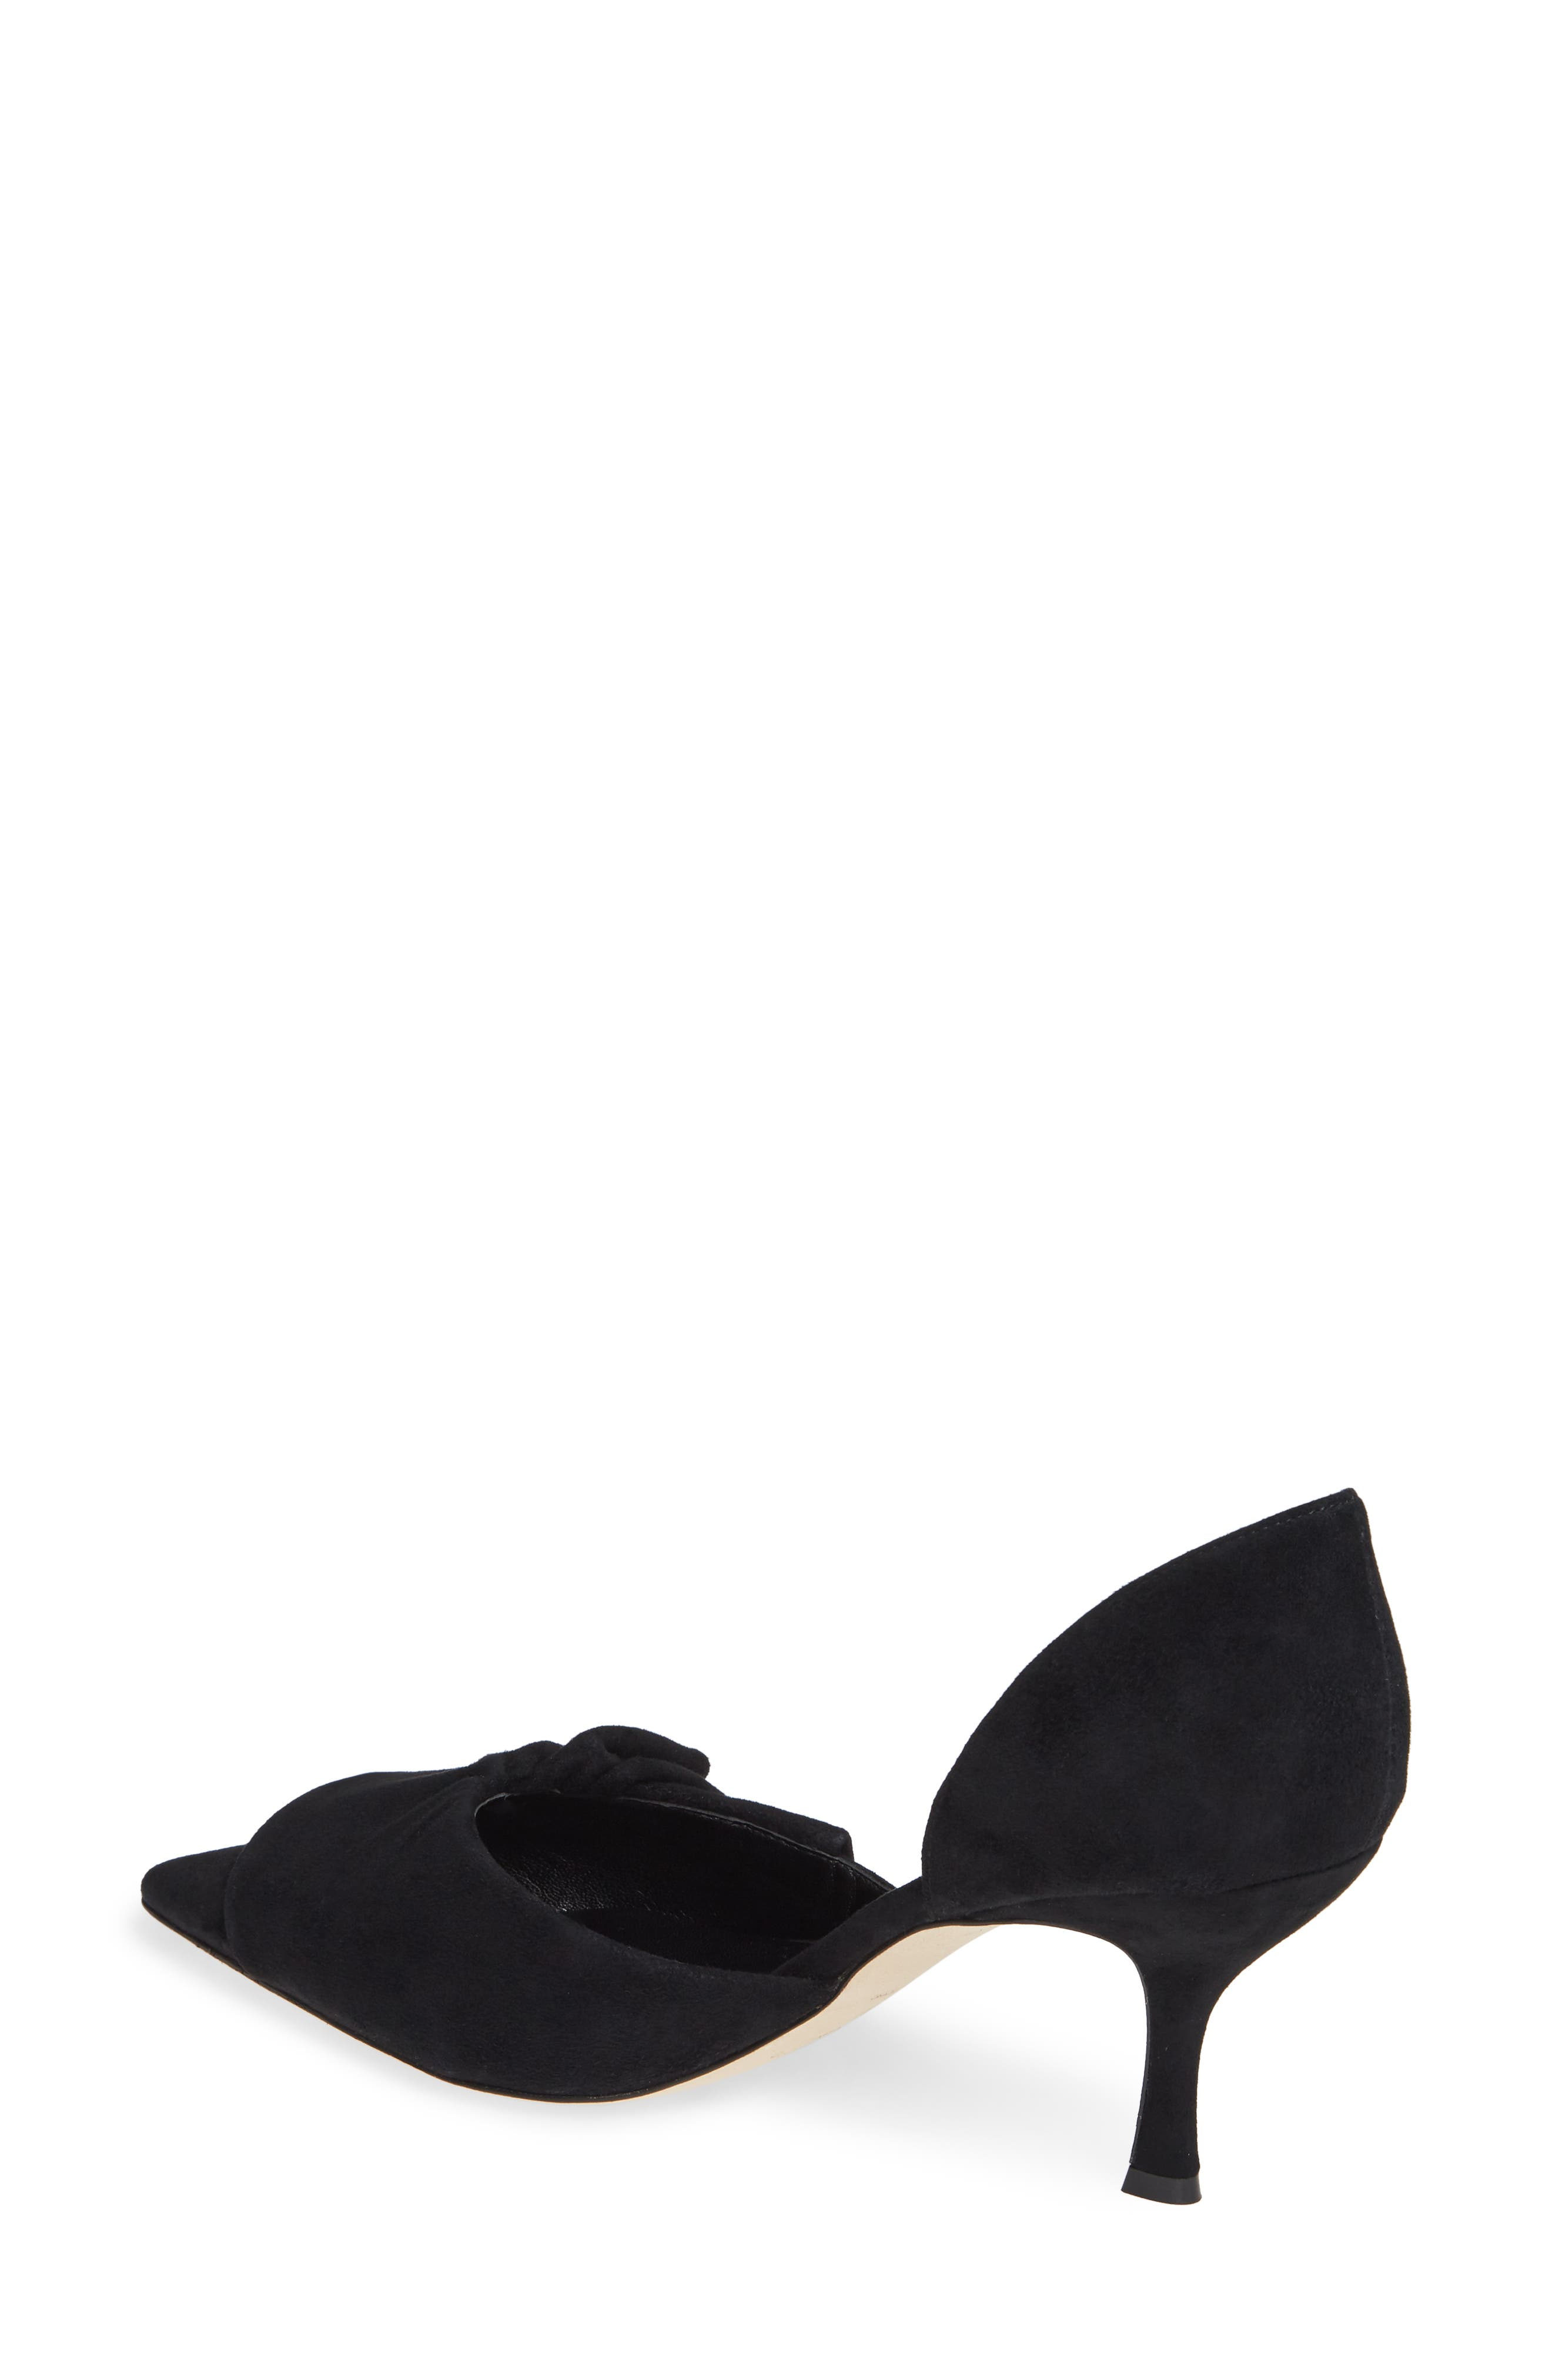 KATE SPADE NEW YORK,                             shayna d'orsay pump,                             Alternate thumbnail 2, color,                             006